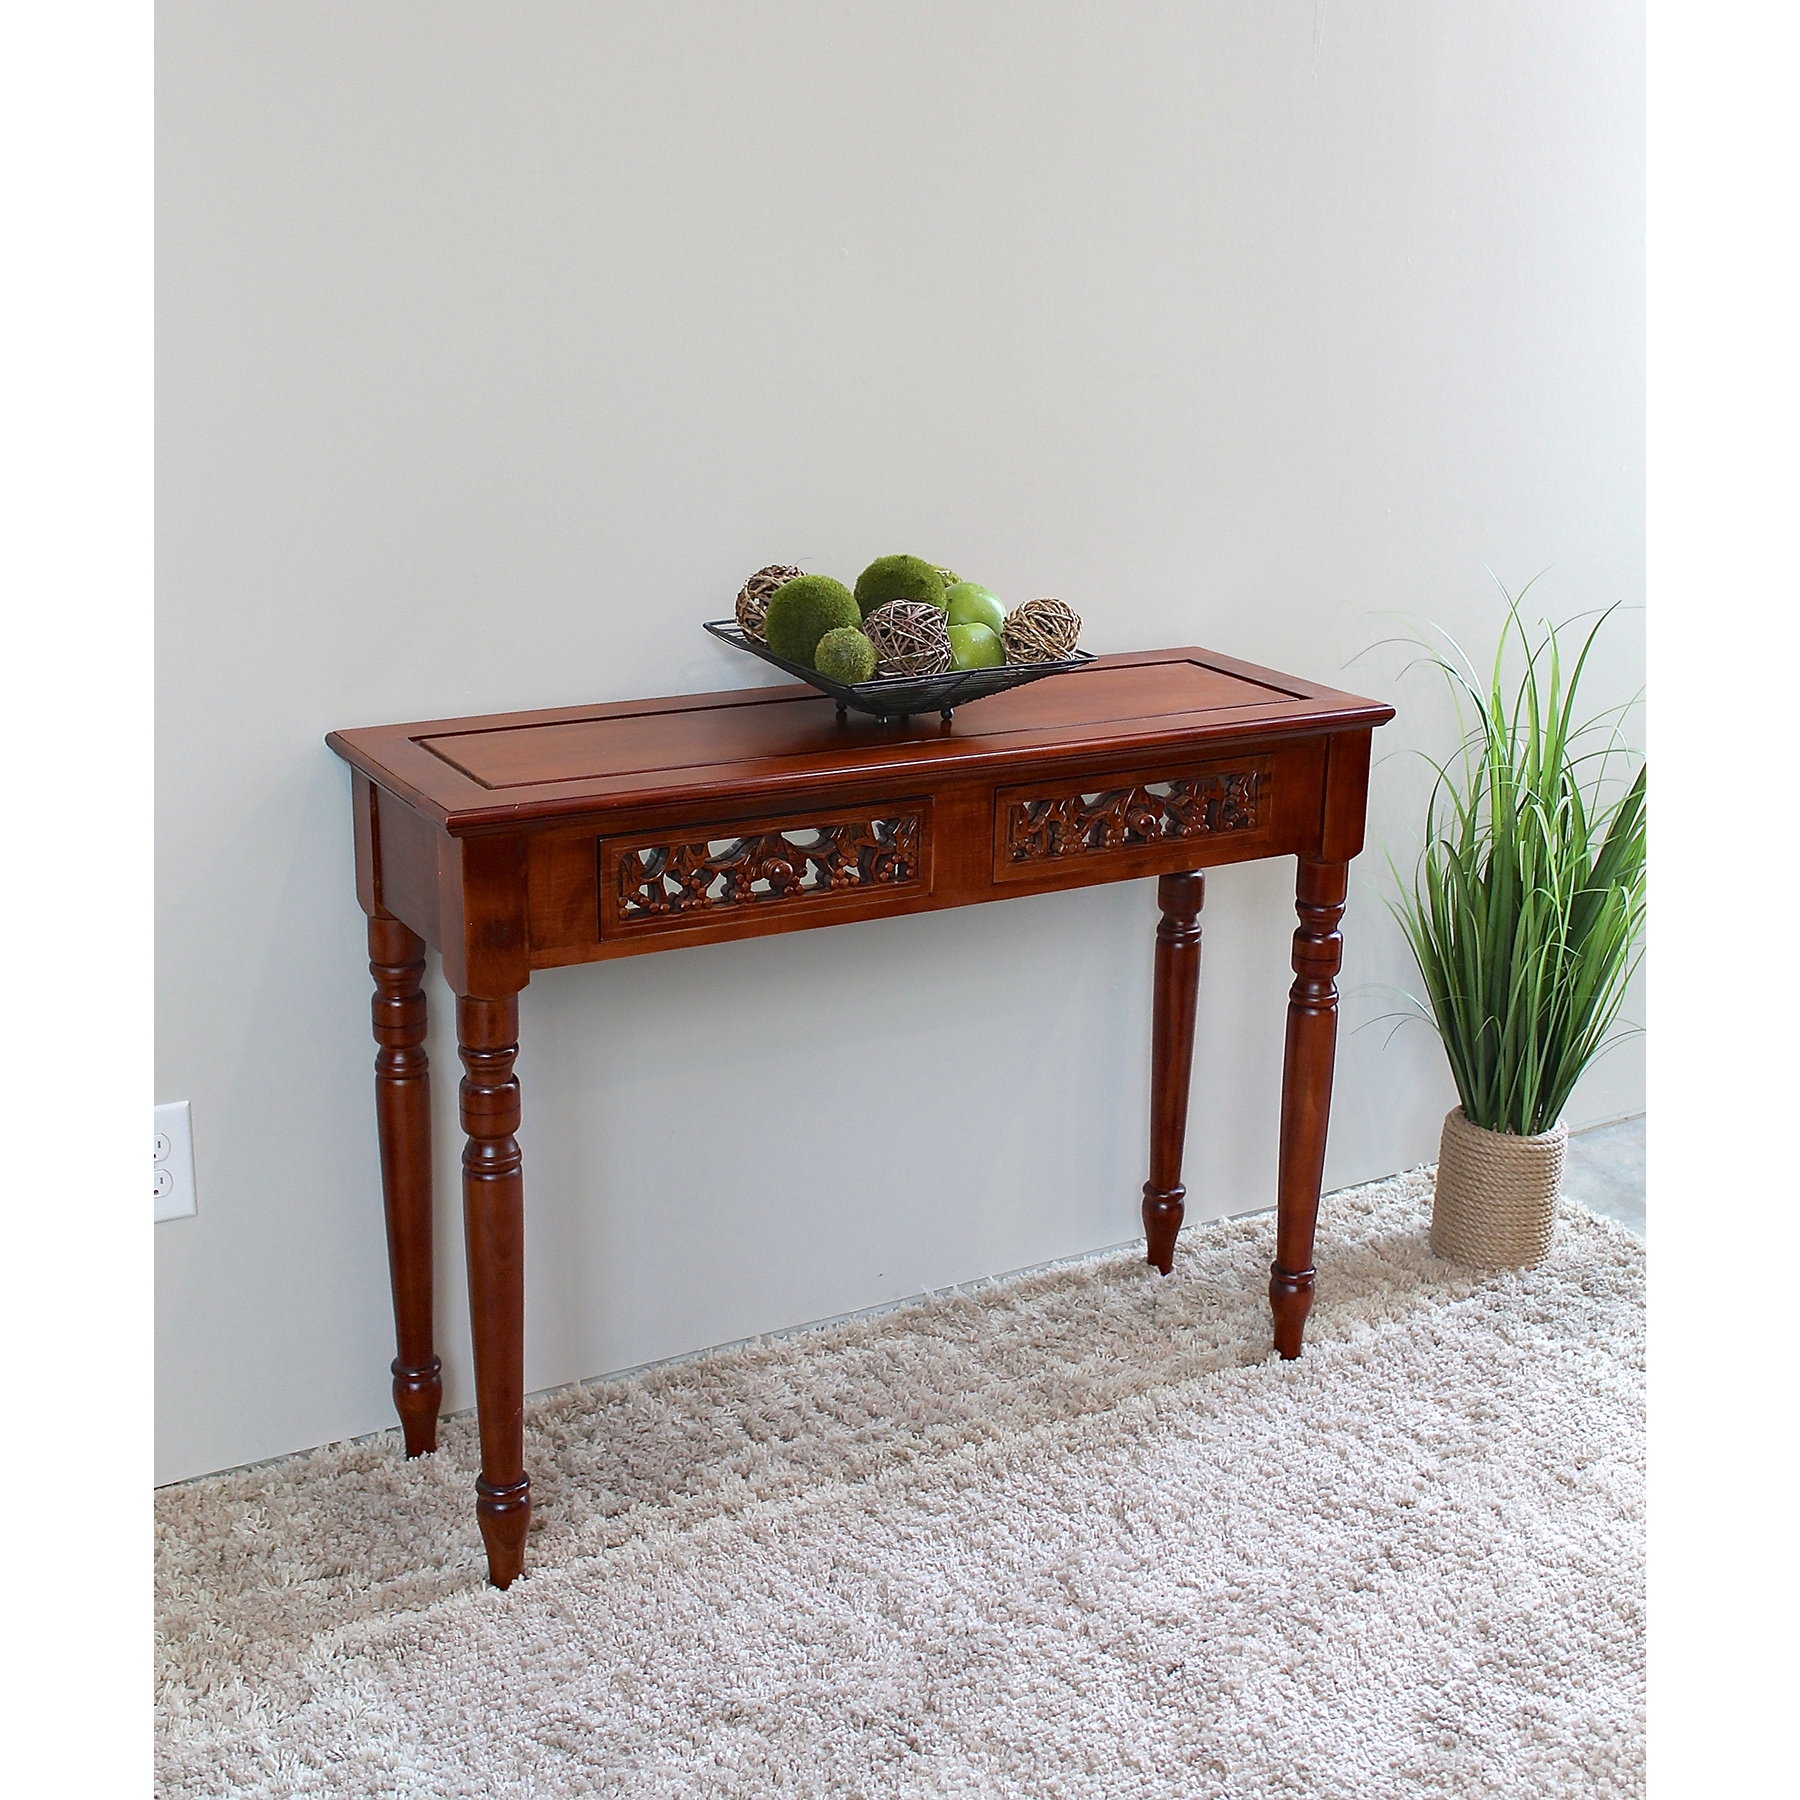 Windsor Wood Sofa Table - 2 Drawers, Mahogany Stain Finish - INTC-3834